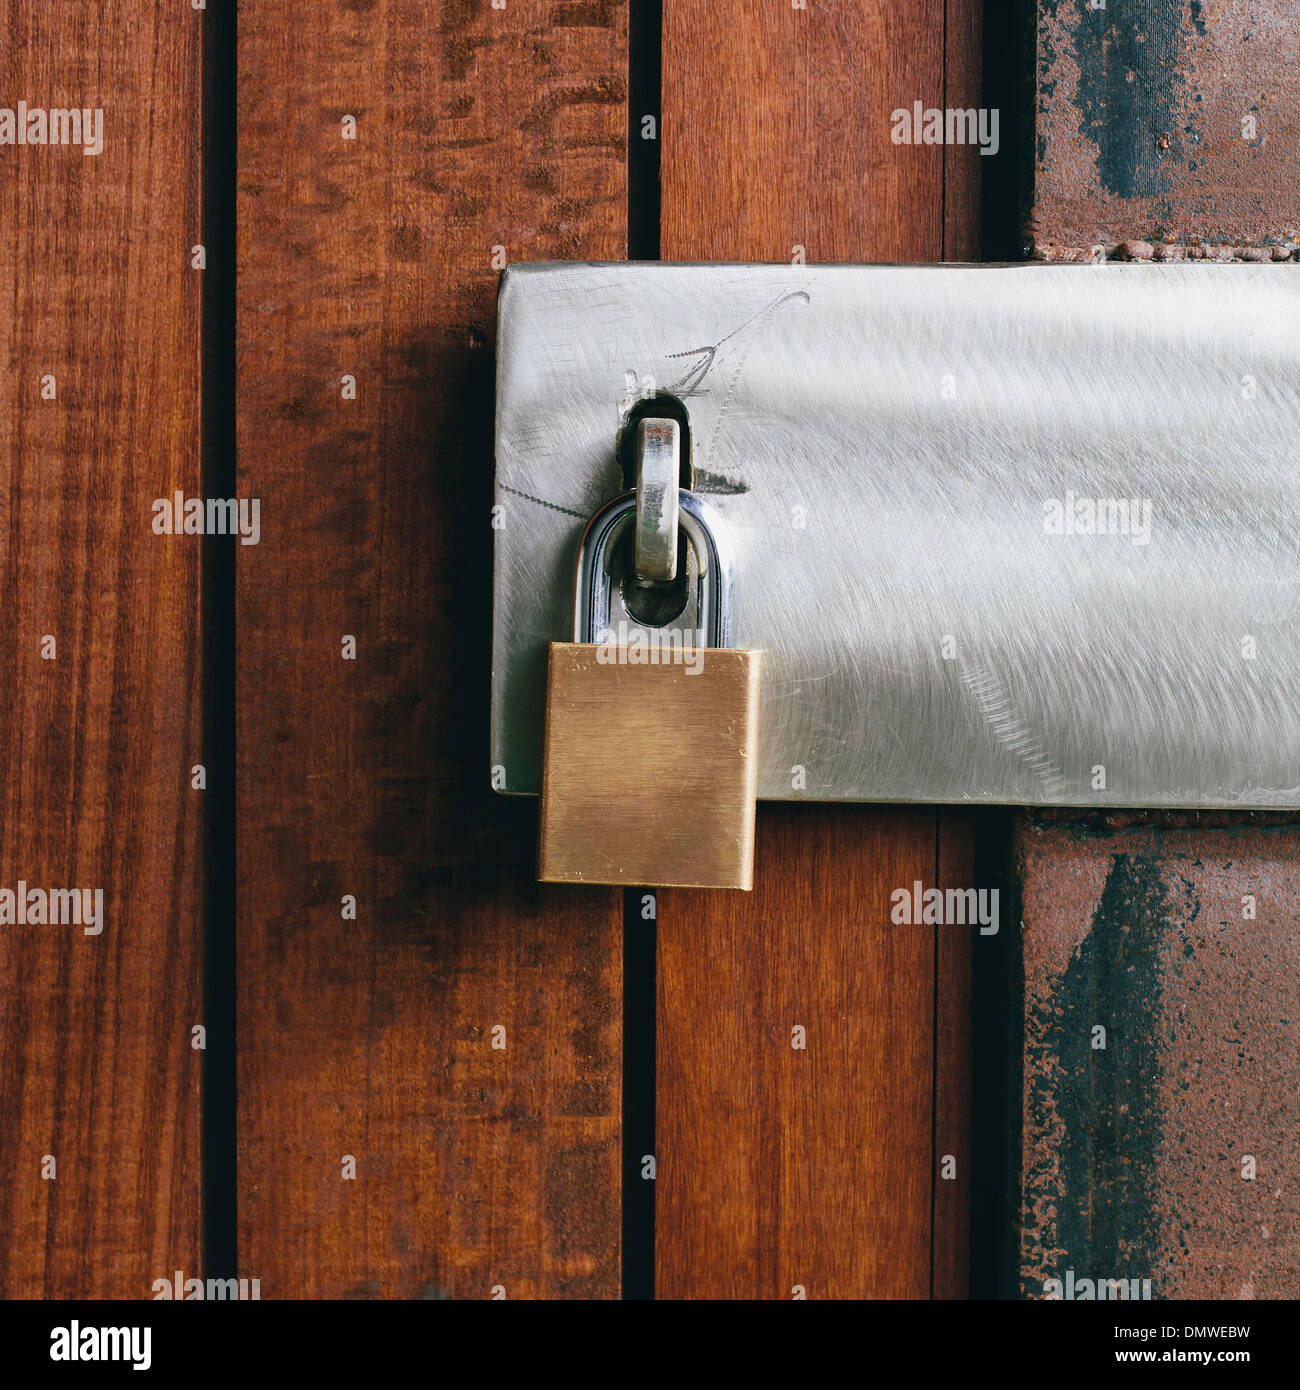 Close up of a wooden doorway with a padlock. - Stock Image